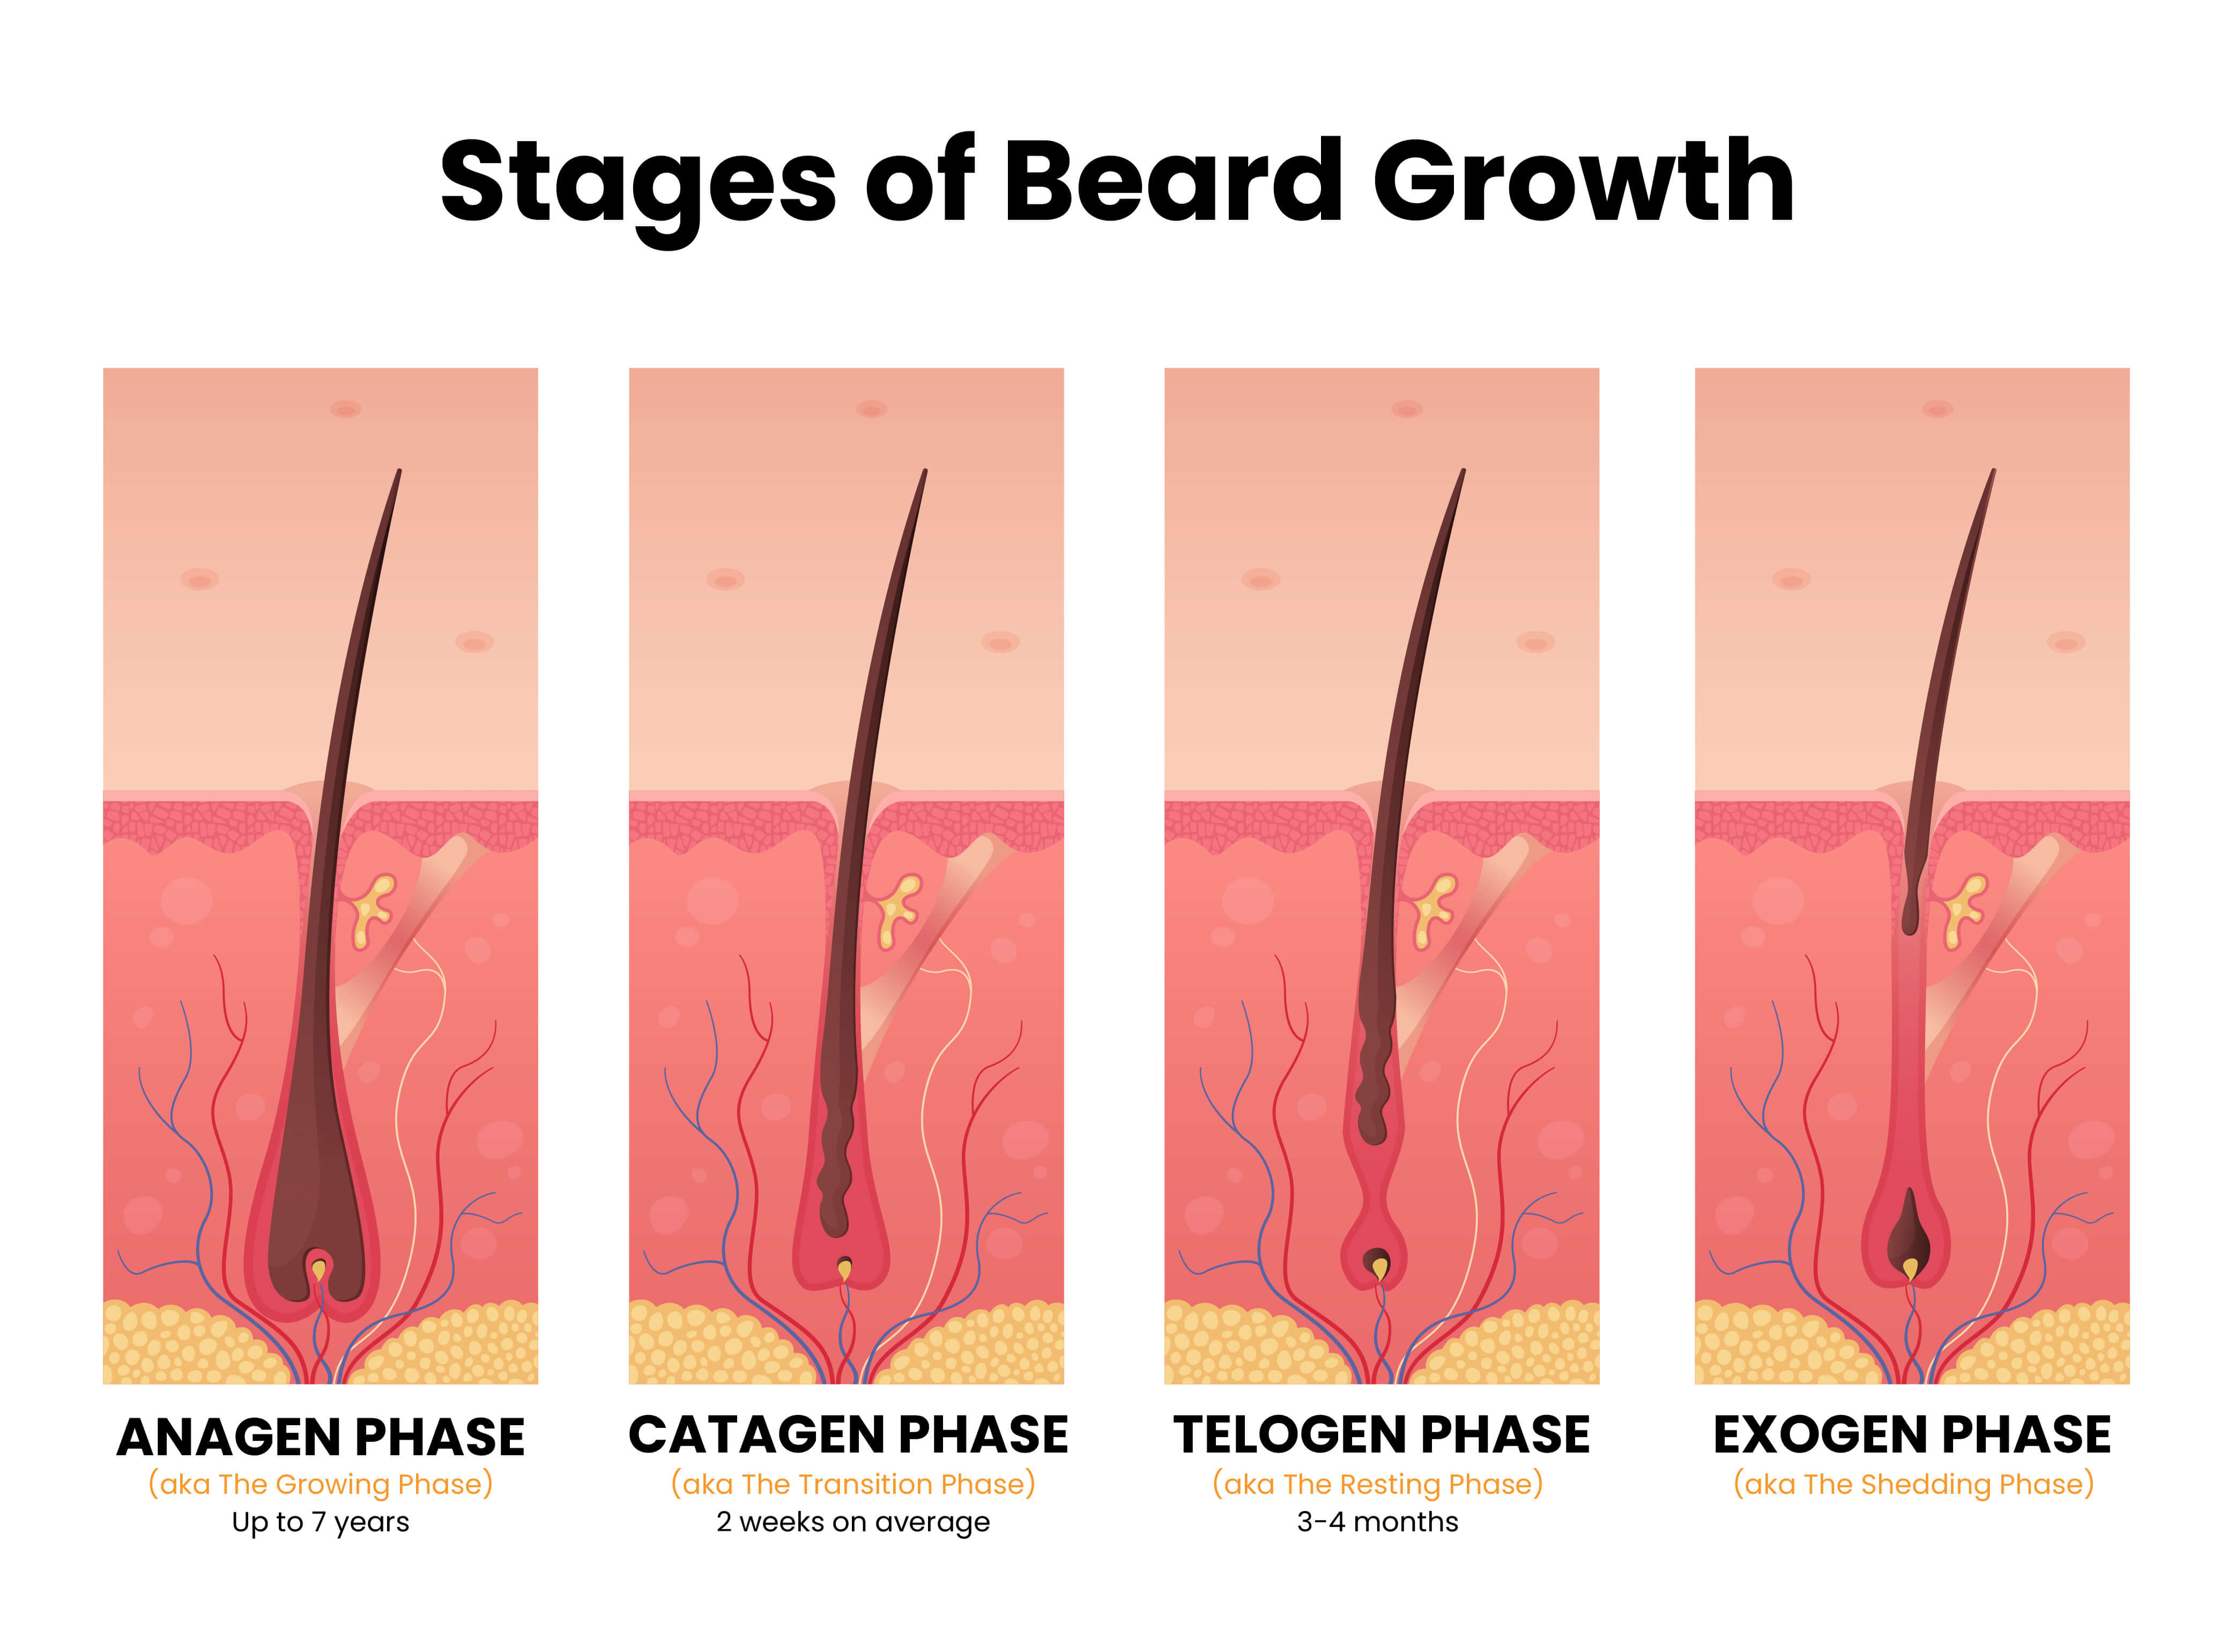 Stages of Beard Growth